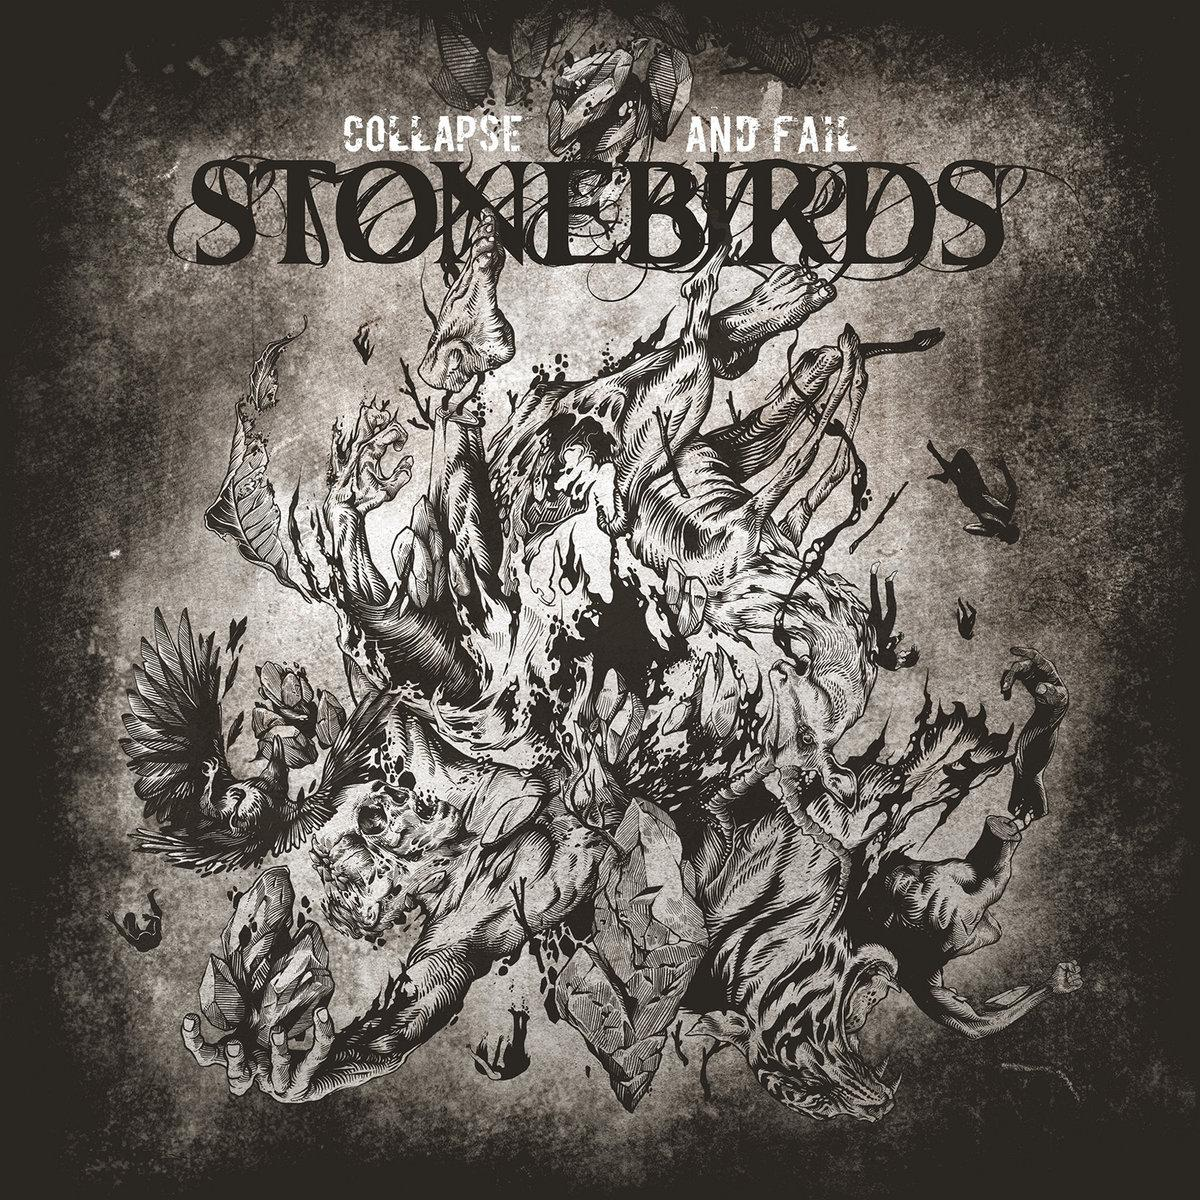 Collapse and fails stonebirds